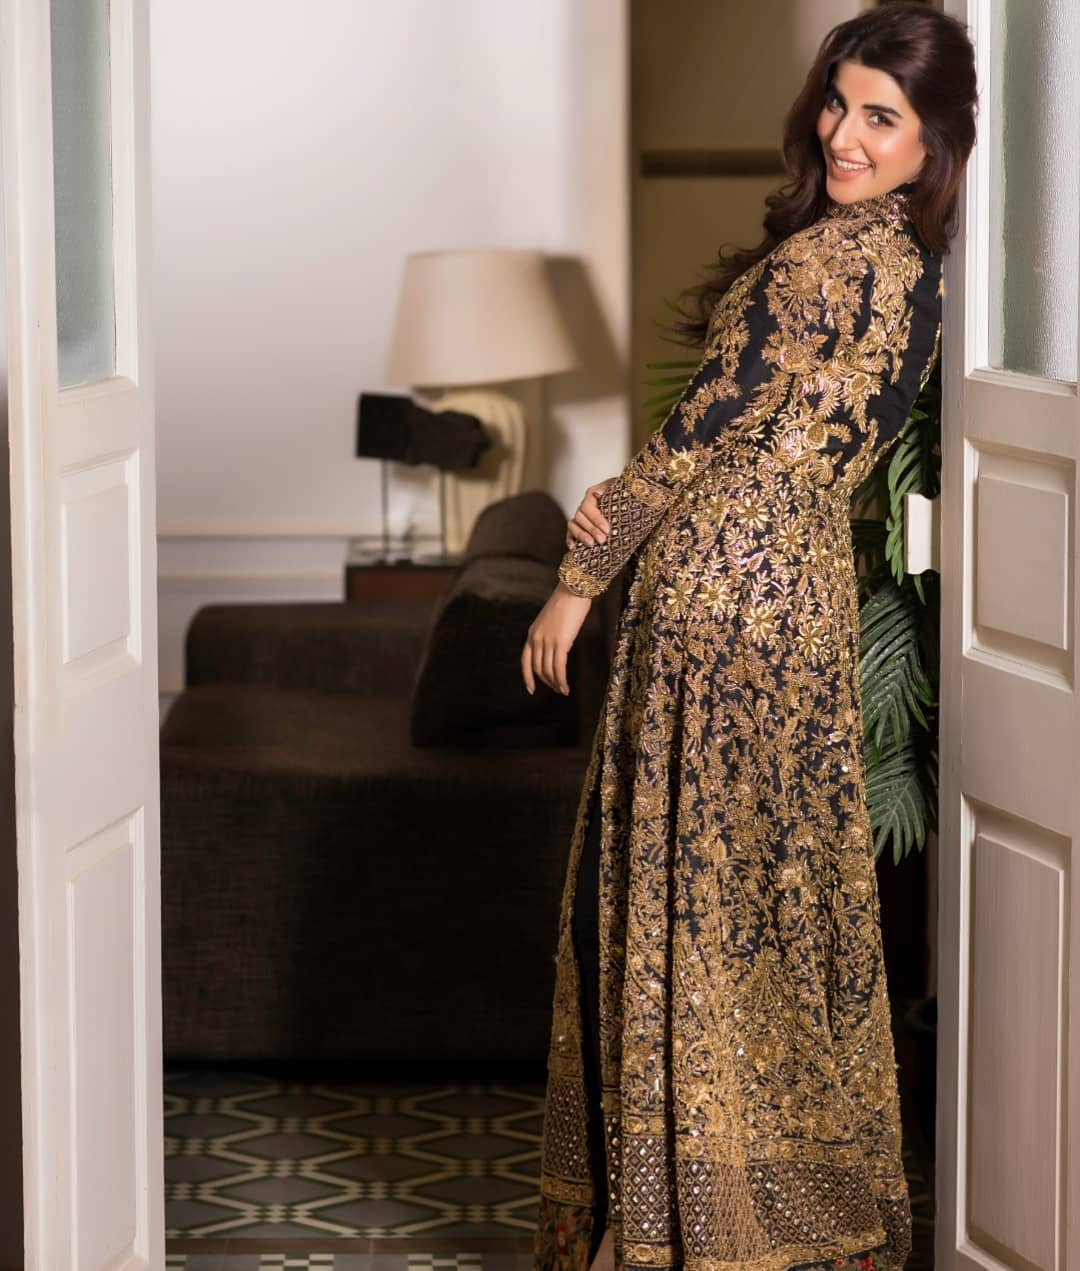 Stunning Hareem Farooq In Bridal Dress By HSY 6